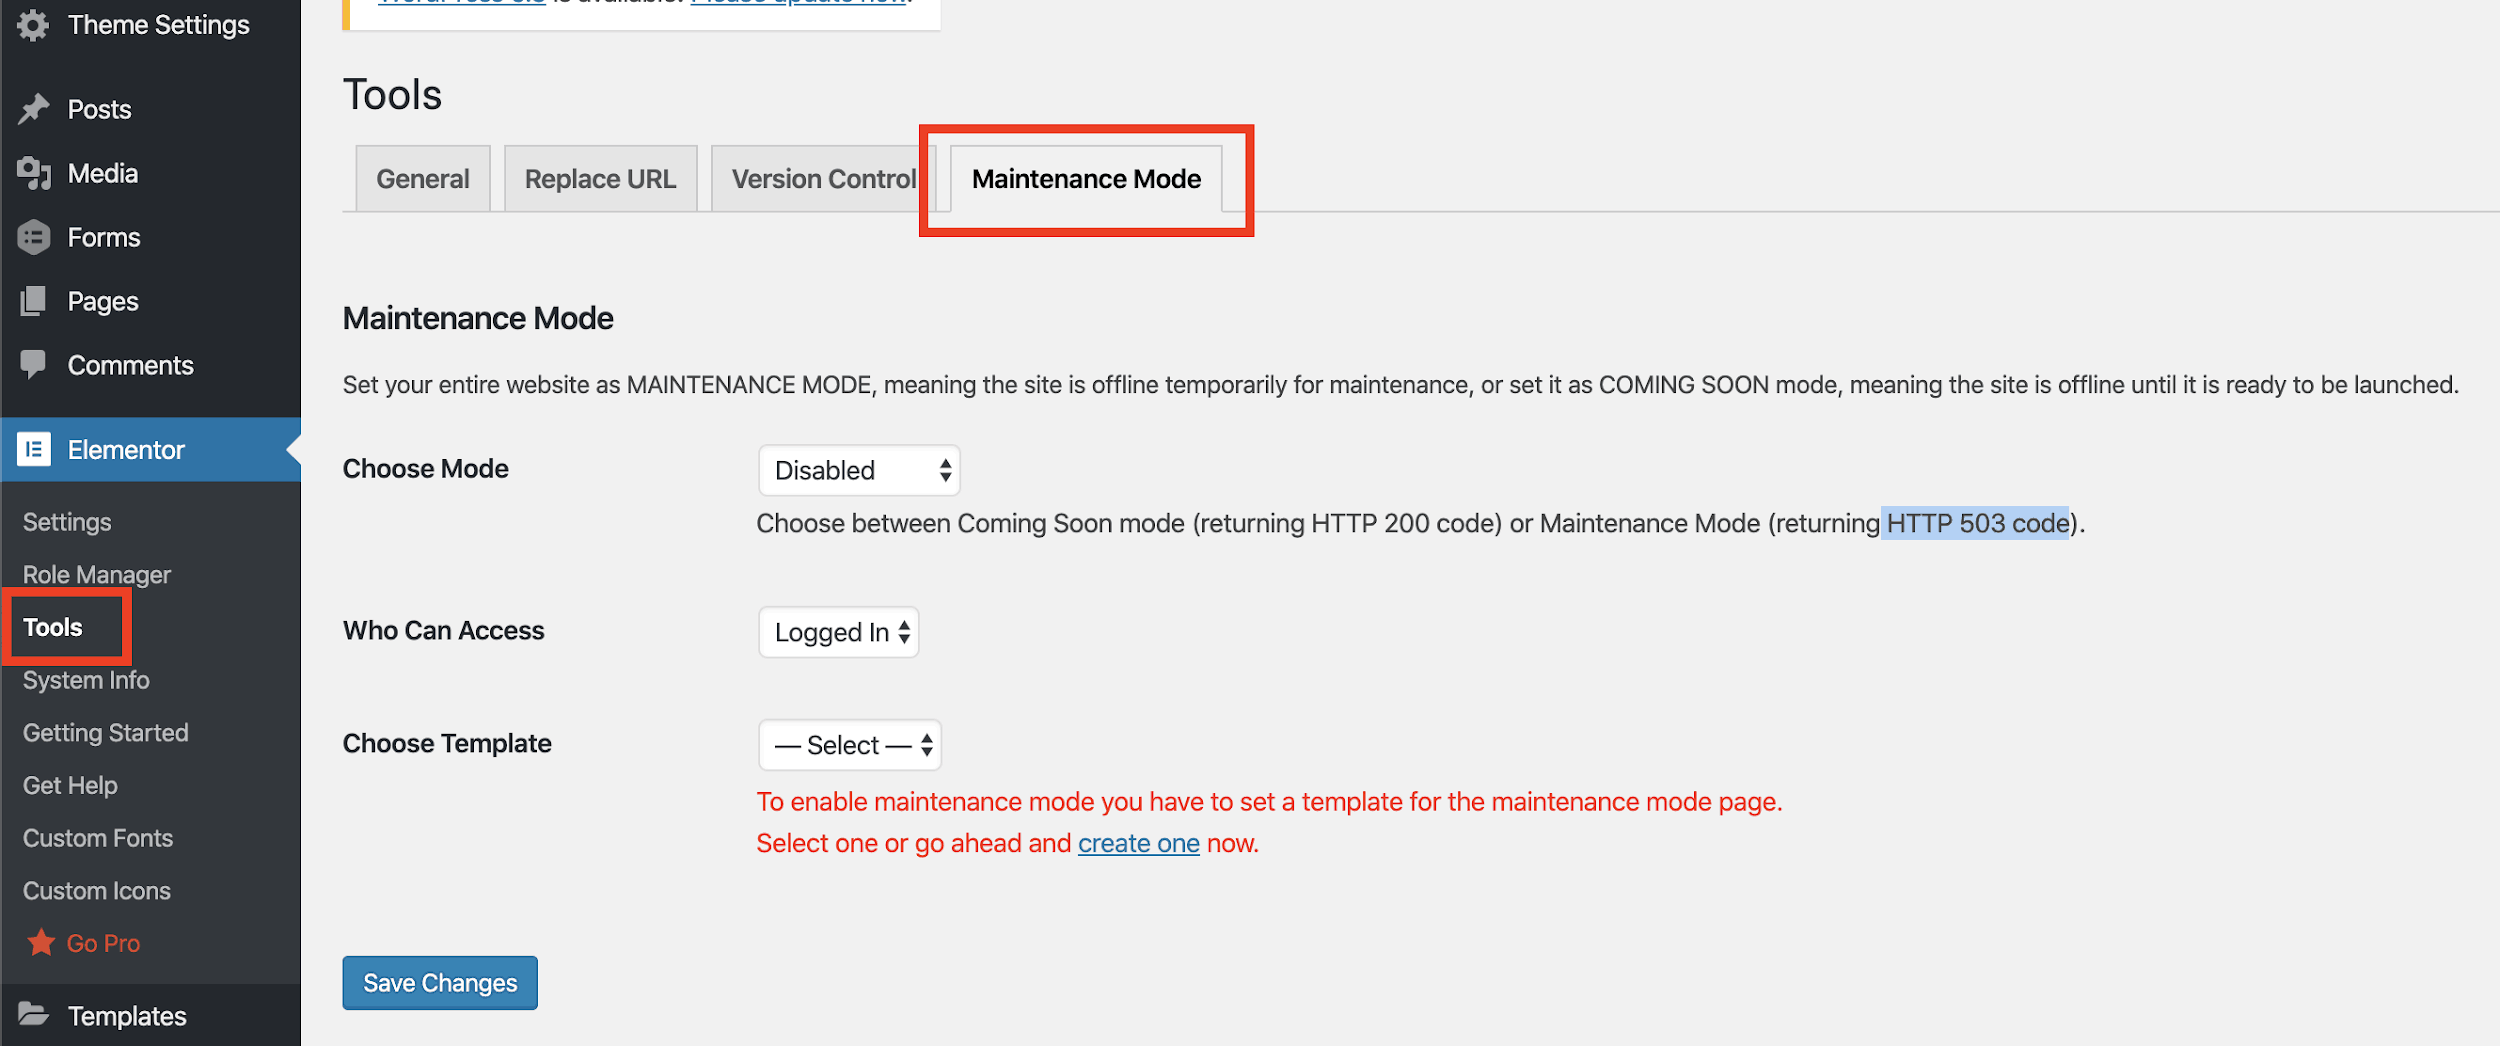 Switching your WordPress site to Maintenance Mode using Elementor